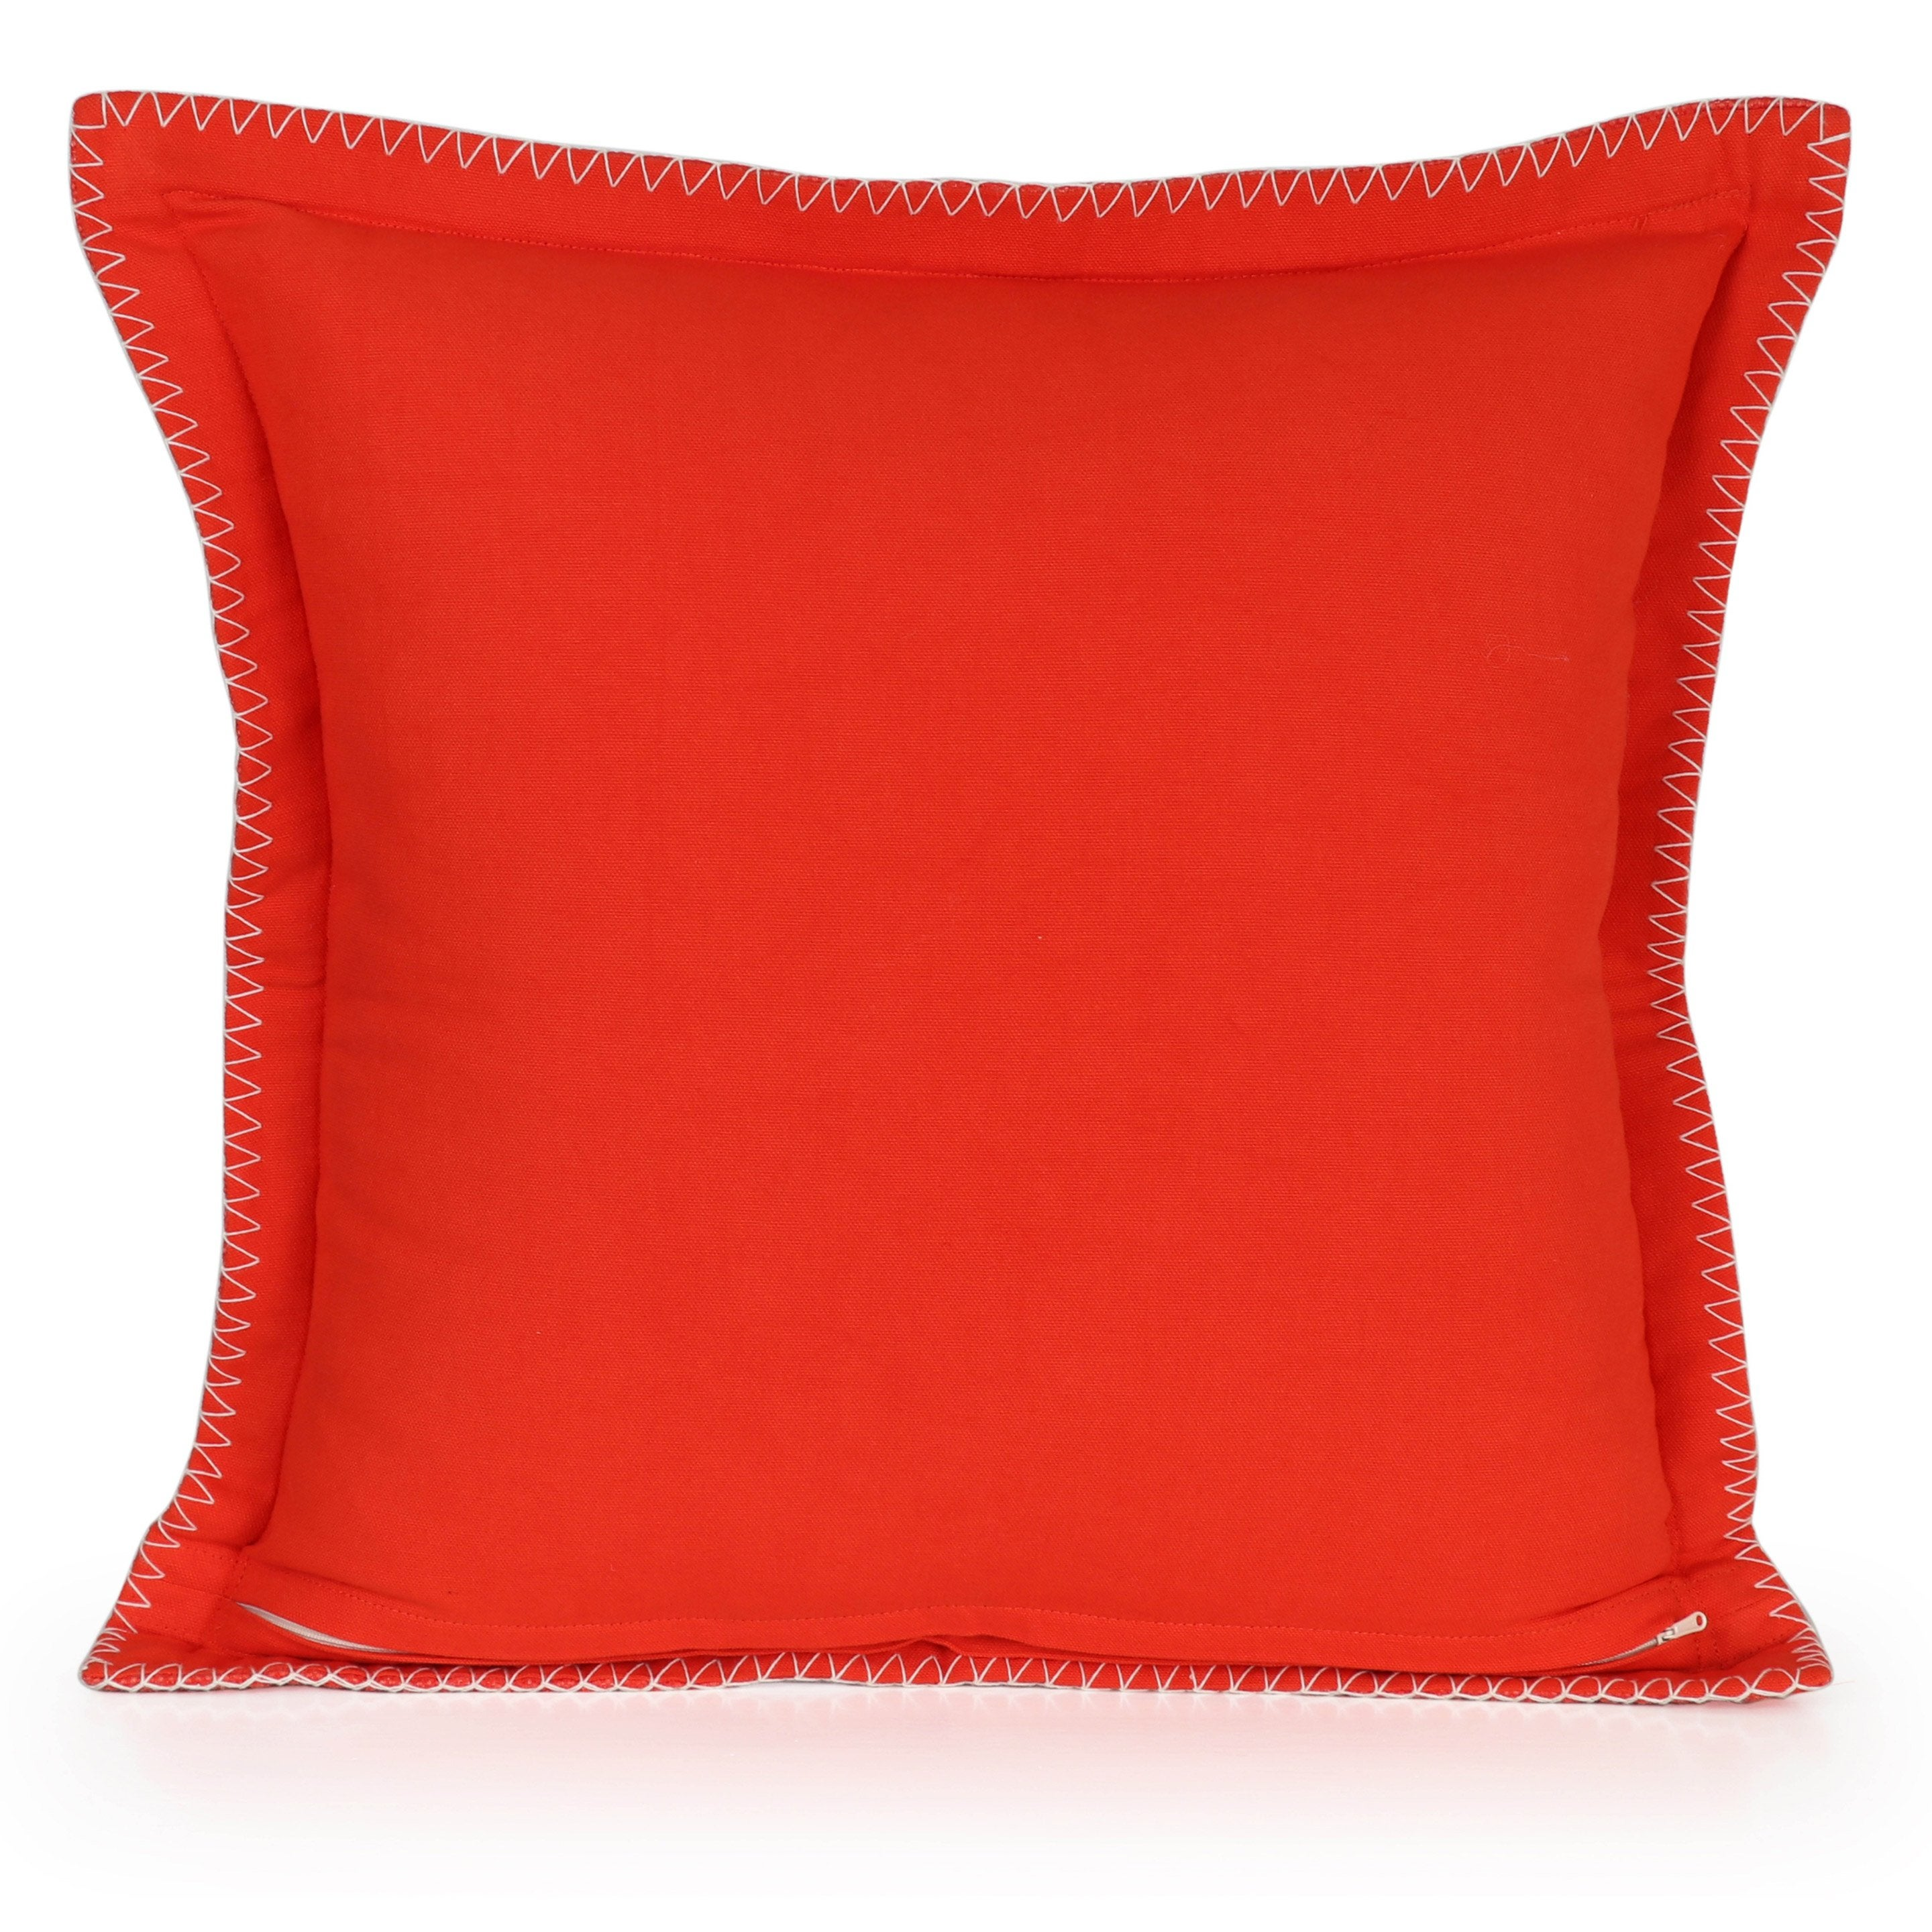 Coussin Nathalie INSPIRE, rouge chili l.45 x H.45 cm